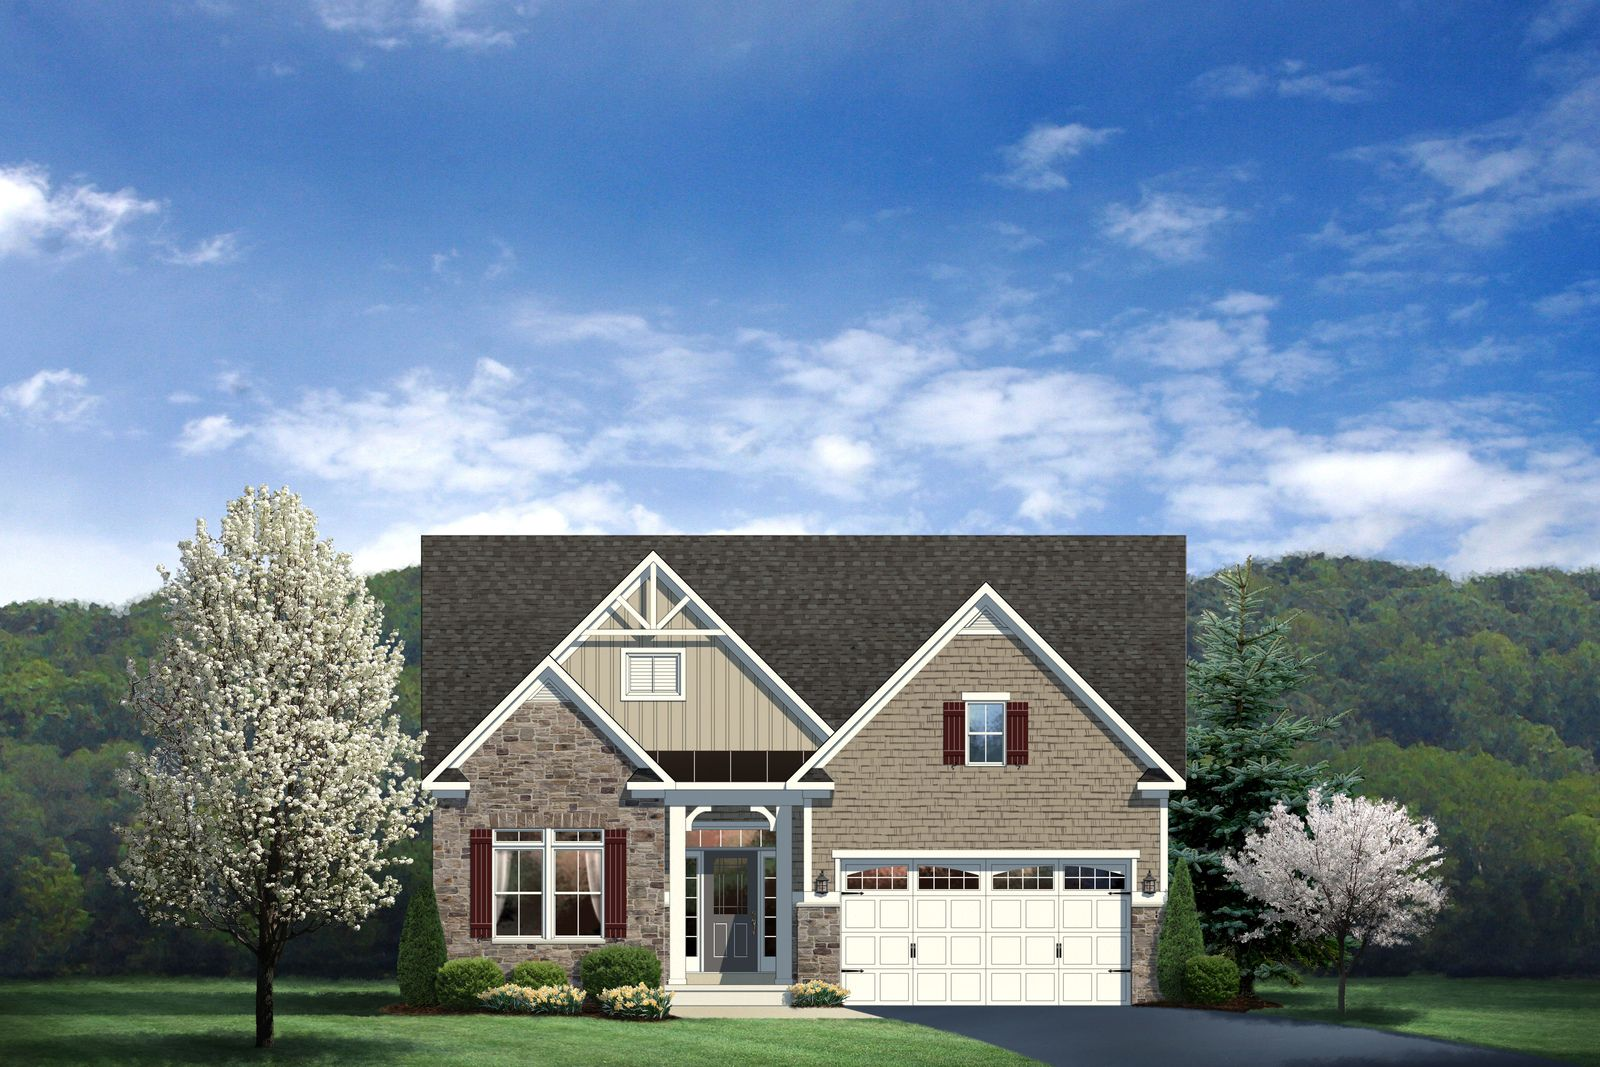 Single Family for Sale at Spring Breeze - Daventry 30211 Lone Palm Way Harbeson, Delaware 19951 United States